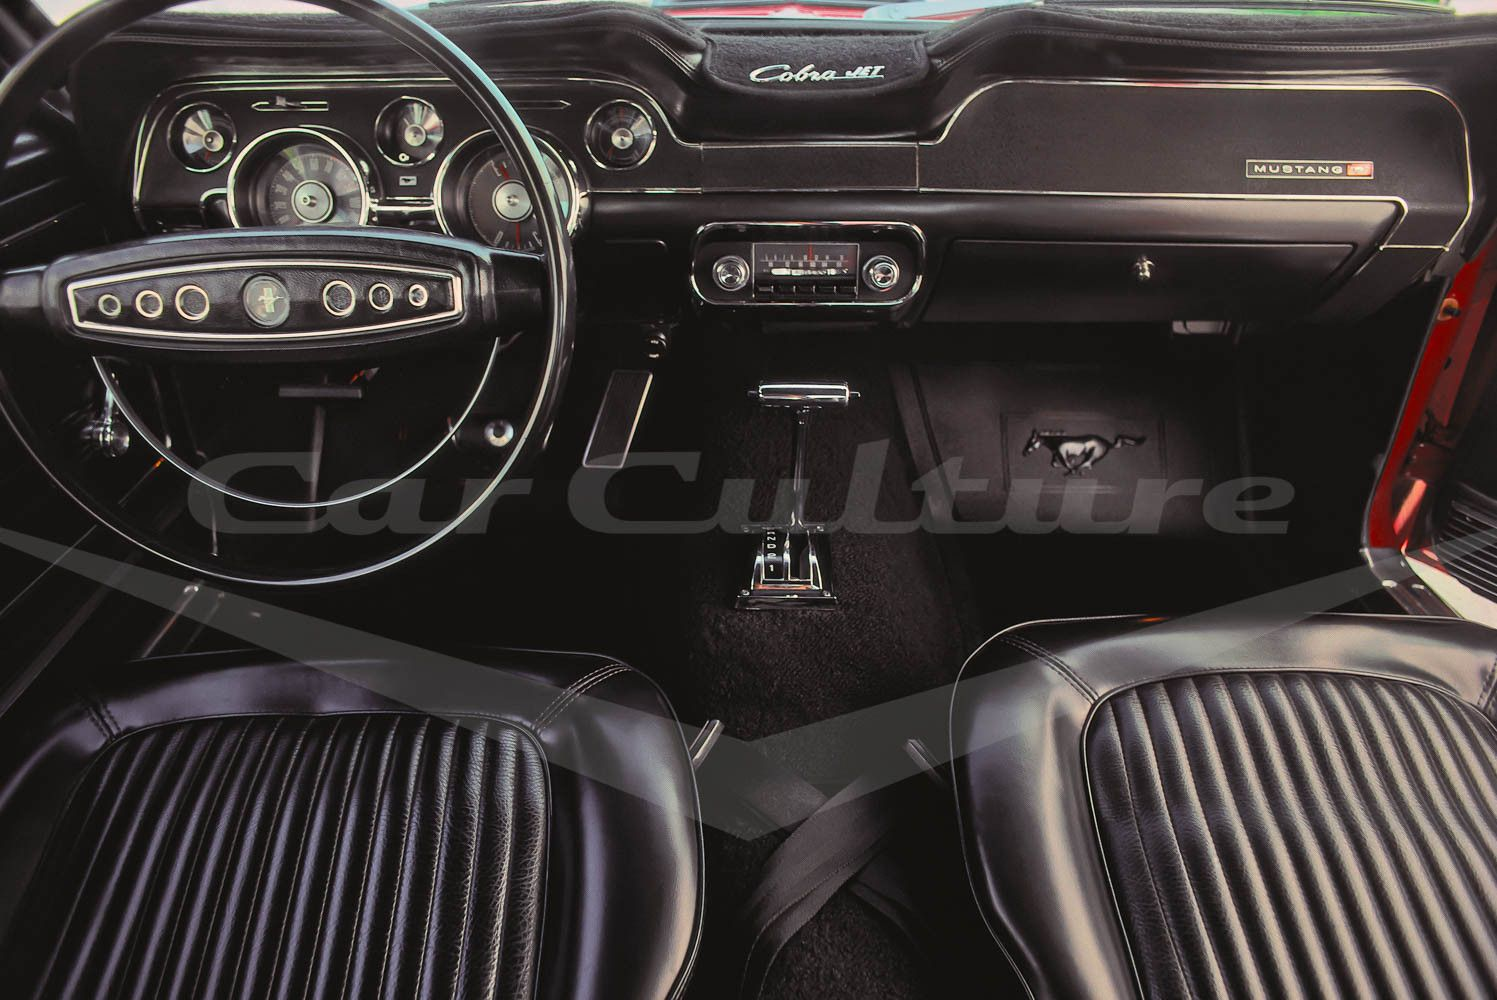 Ford Mustang Cobra Jet 428 Interior   Limited Edition Fine Art Print